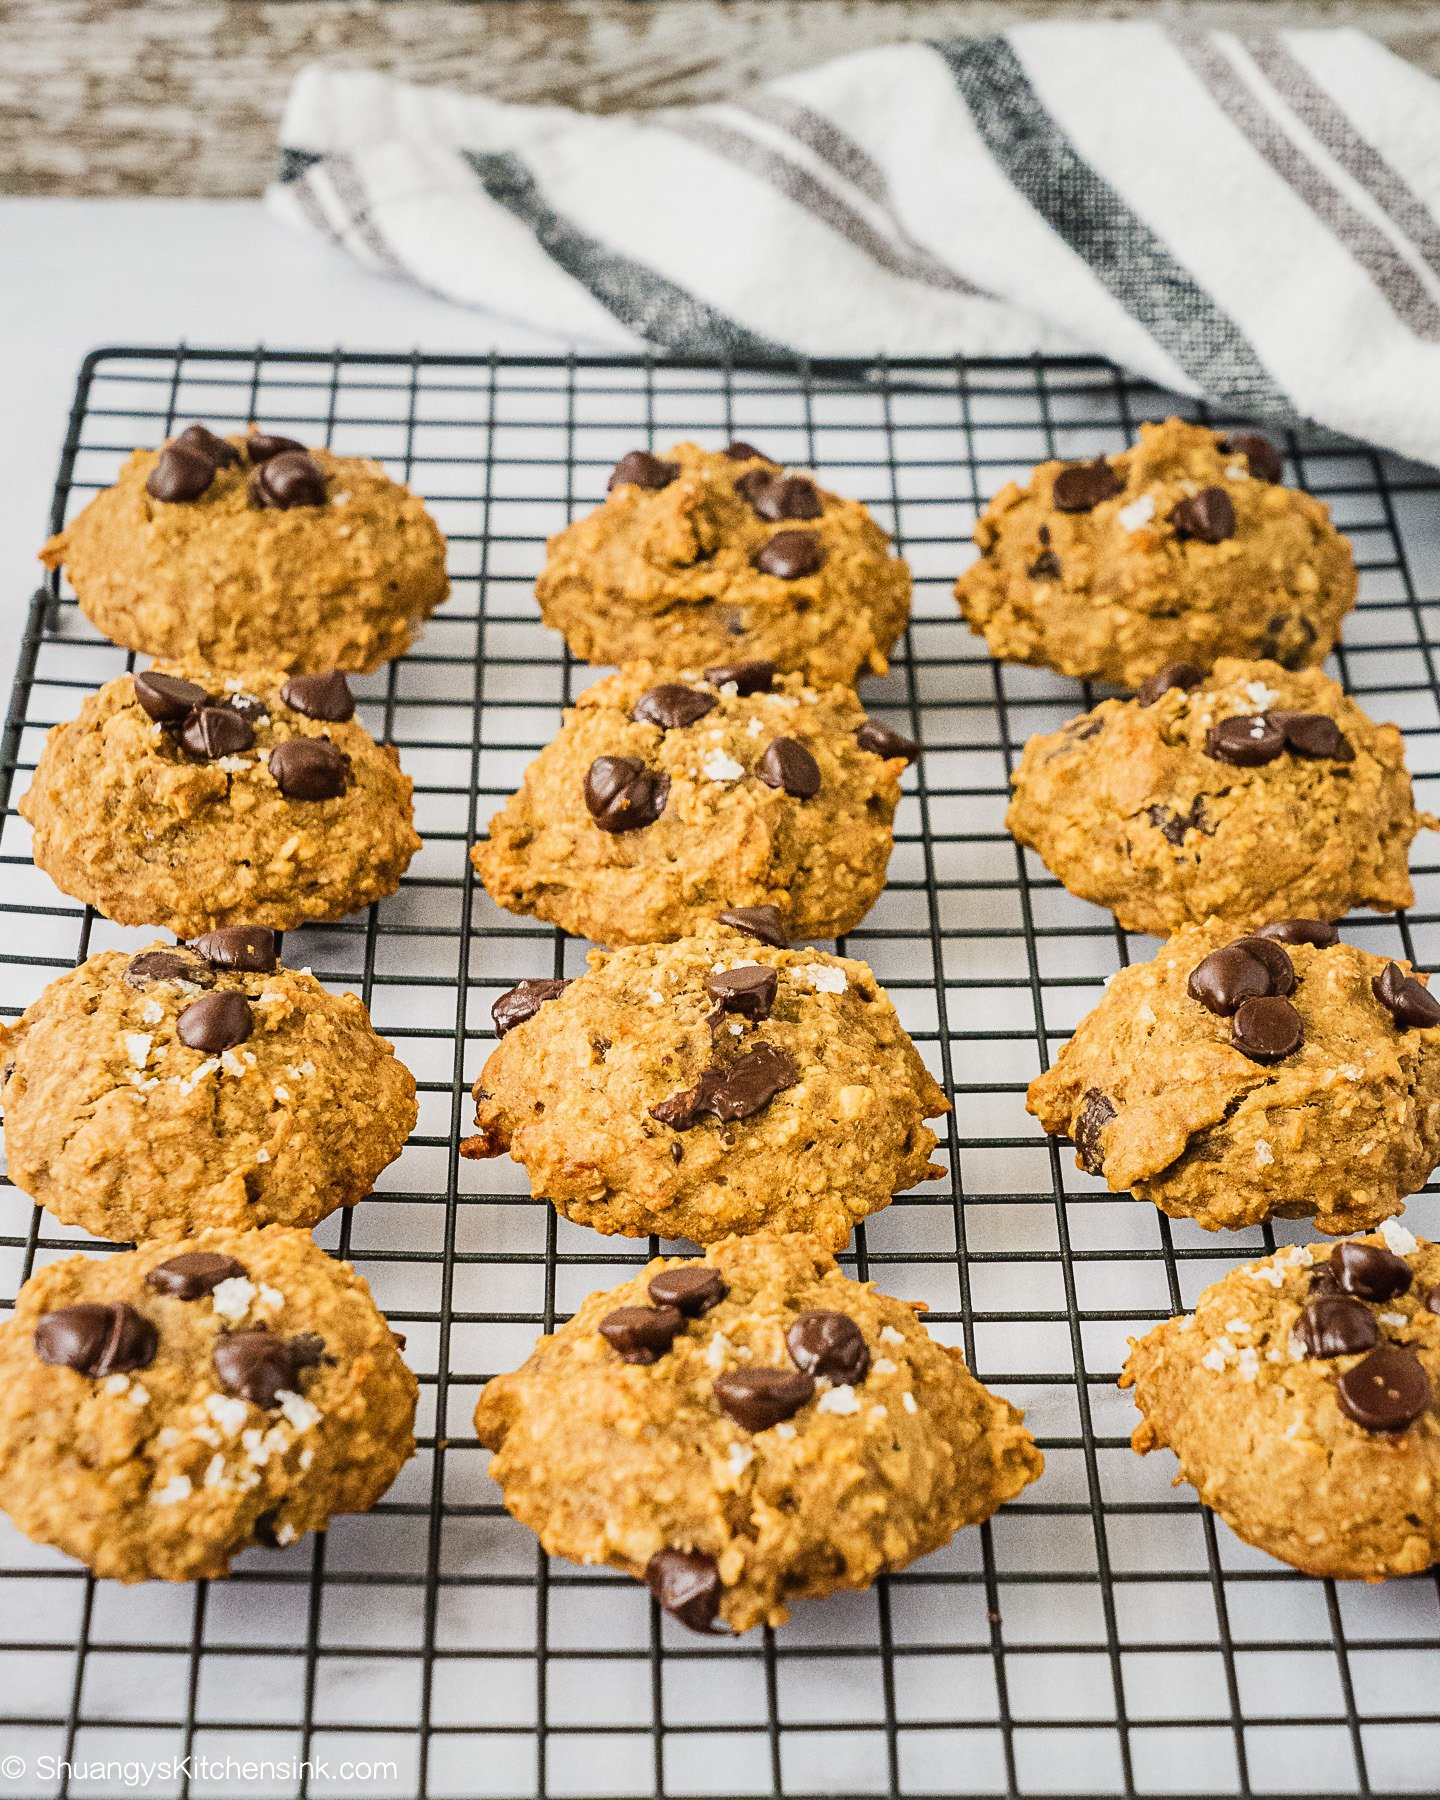 A batch of freshly baked peanut butter banana oatmeal cookies on a cooling rack.